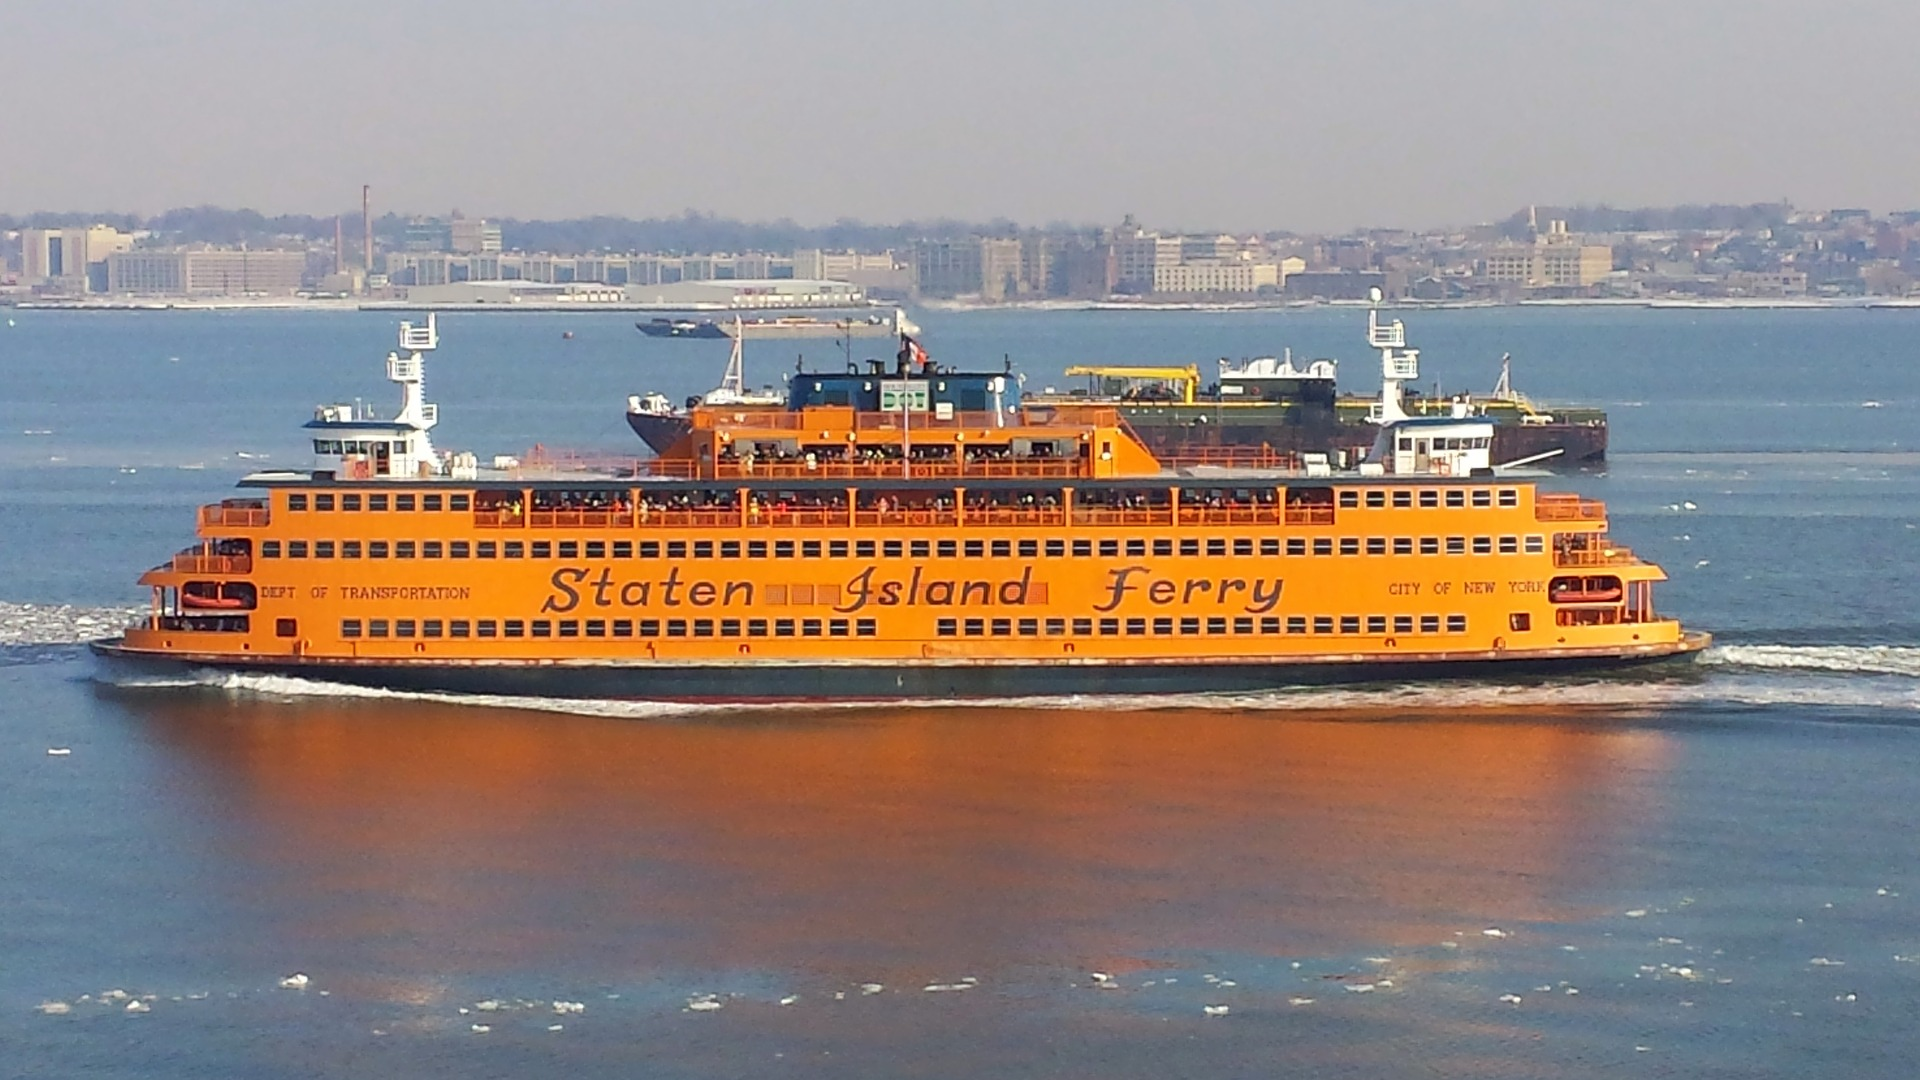 Photo of the Staten Island Ferry